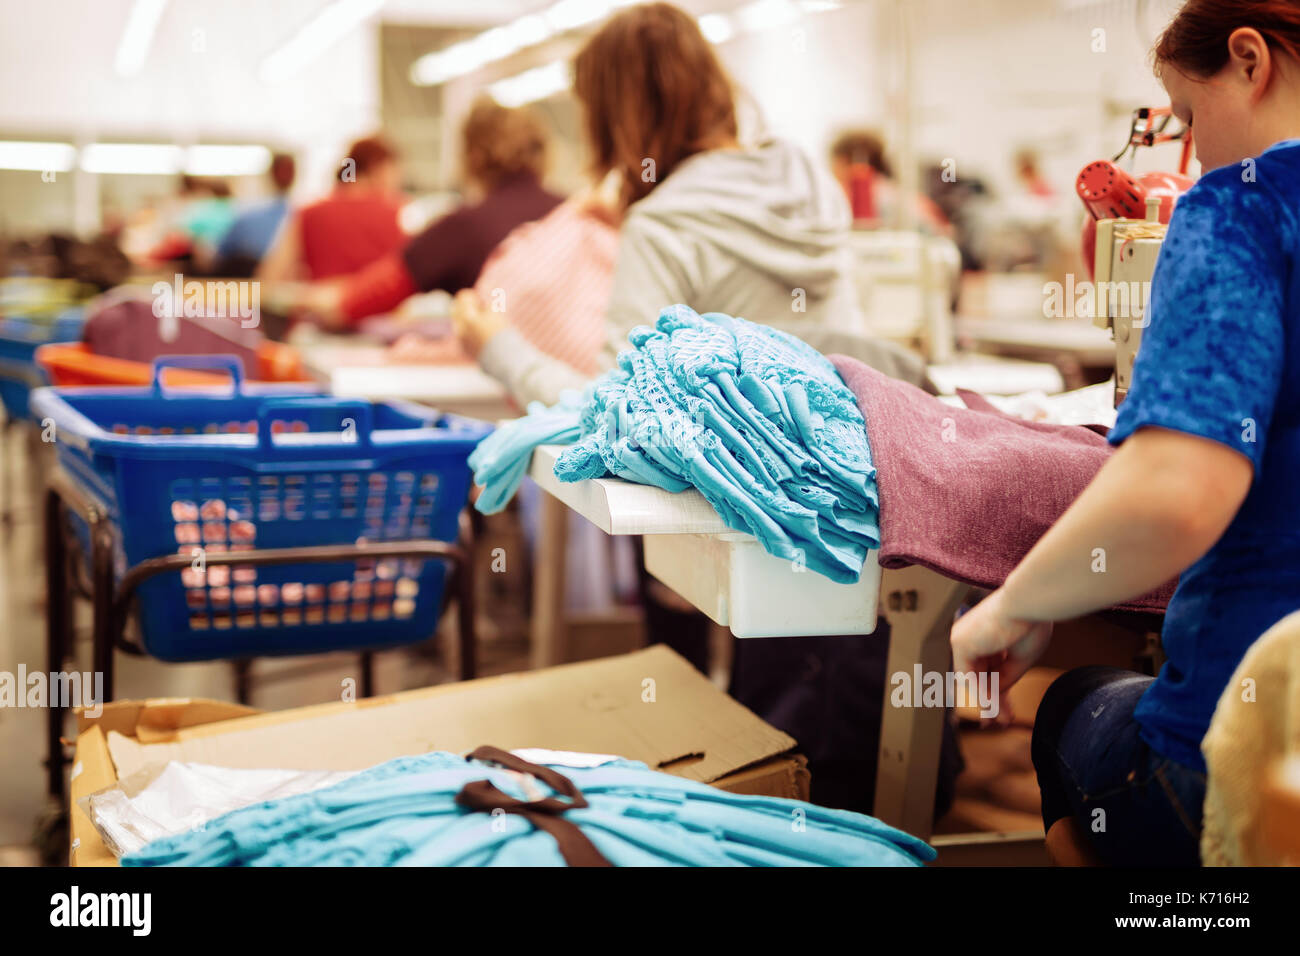 Fabric and textile industry - Stock Image